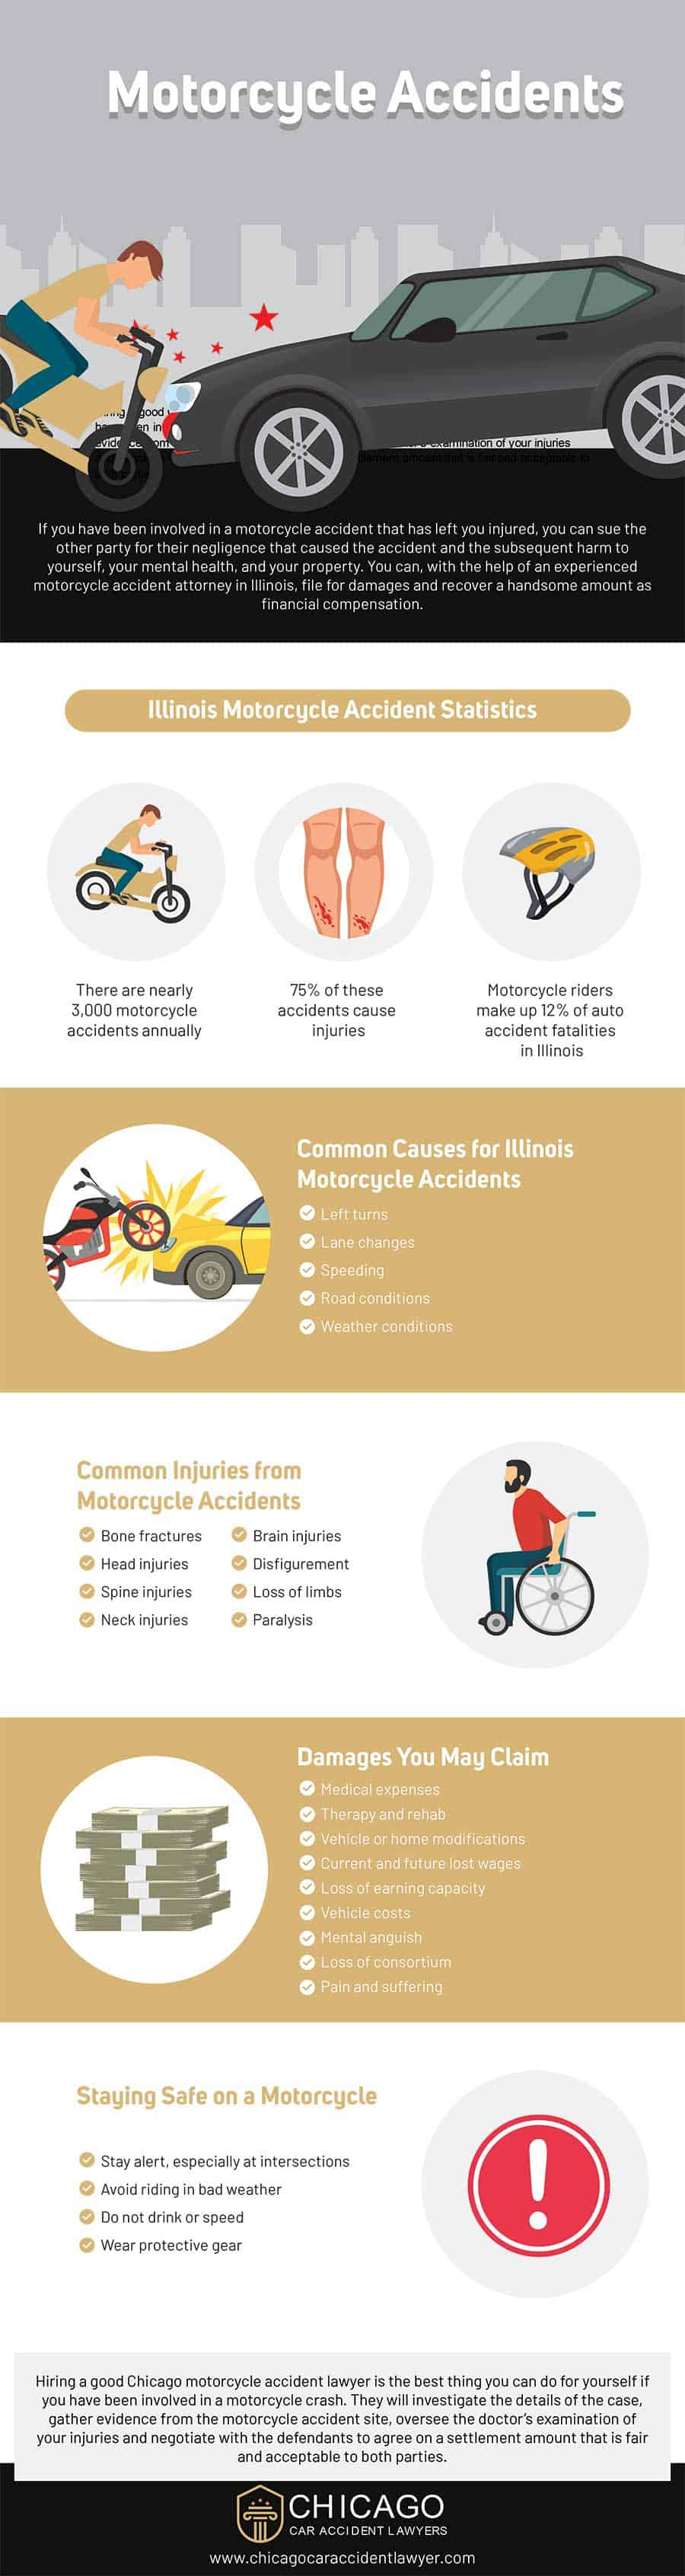 Motorcycle Accidents - Infographic